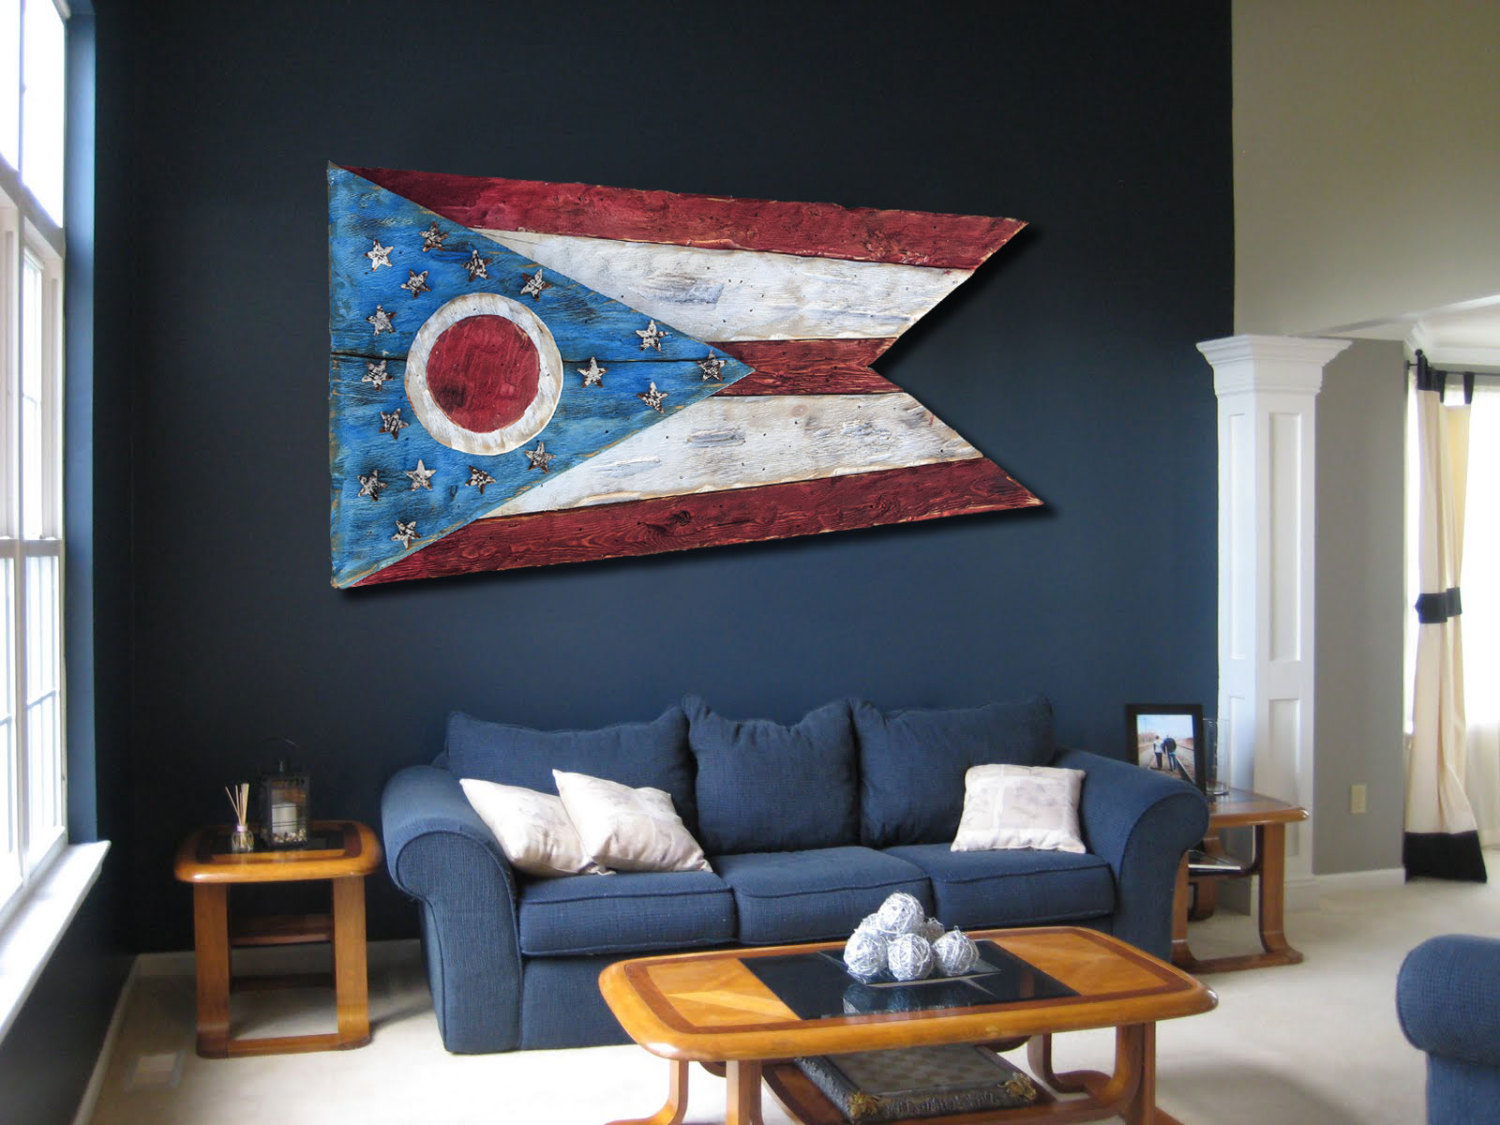 Weathered Wood One Of A Kind 3D Ohio Flag, Wooden, Vintage, Art,